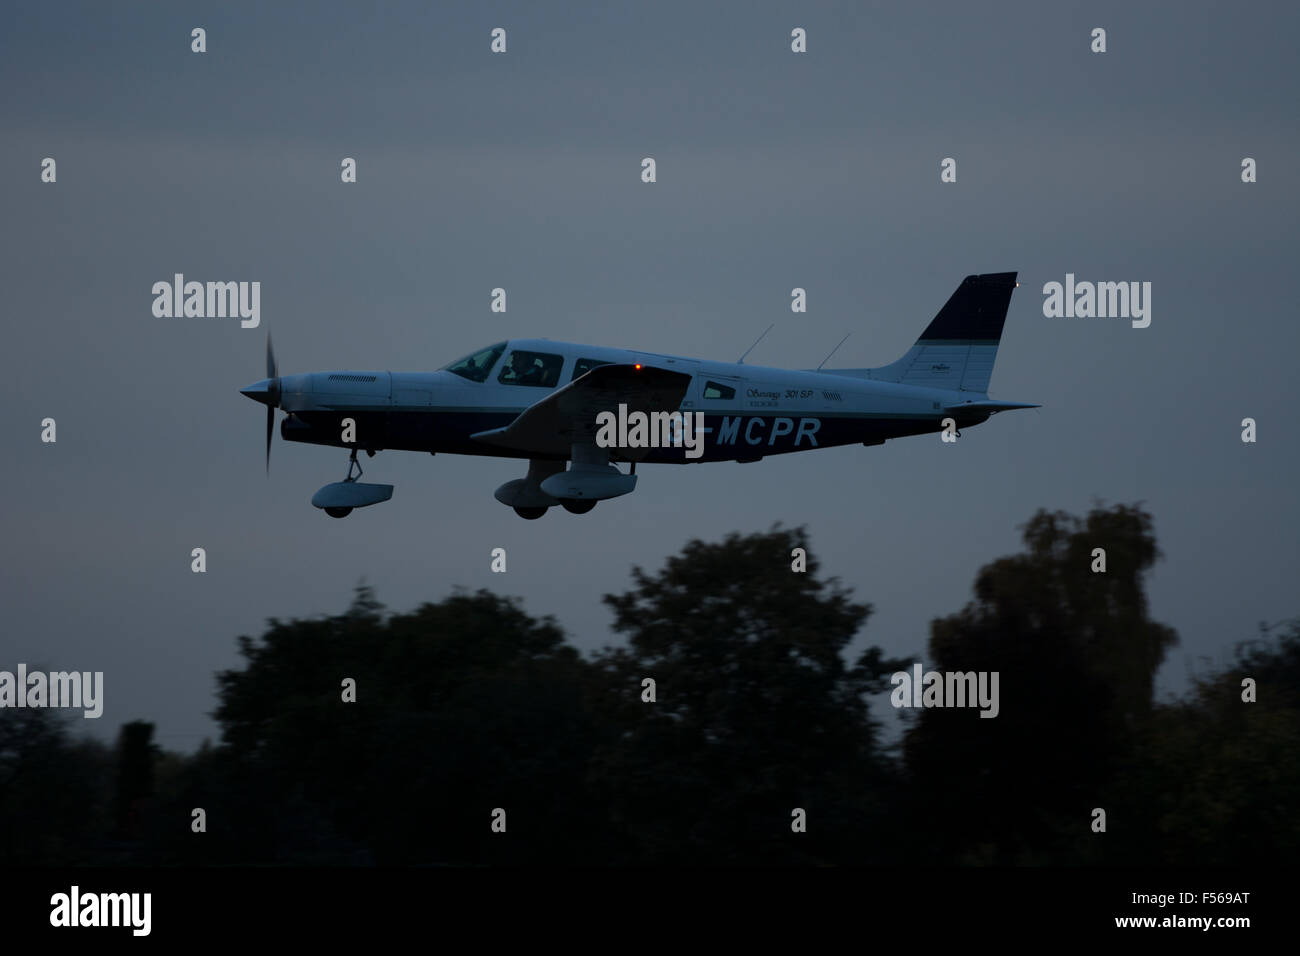 Piper PA32 Turbo Saratoga at Wellesbourne Airfield landing in almost darkness, UK (G-MCPR) - Stock Image